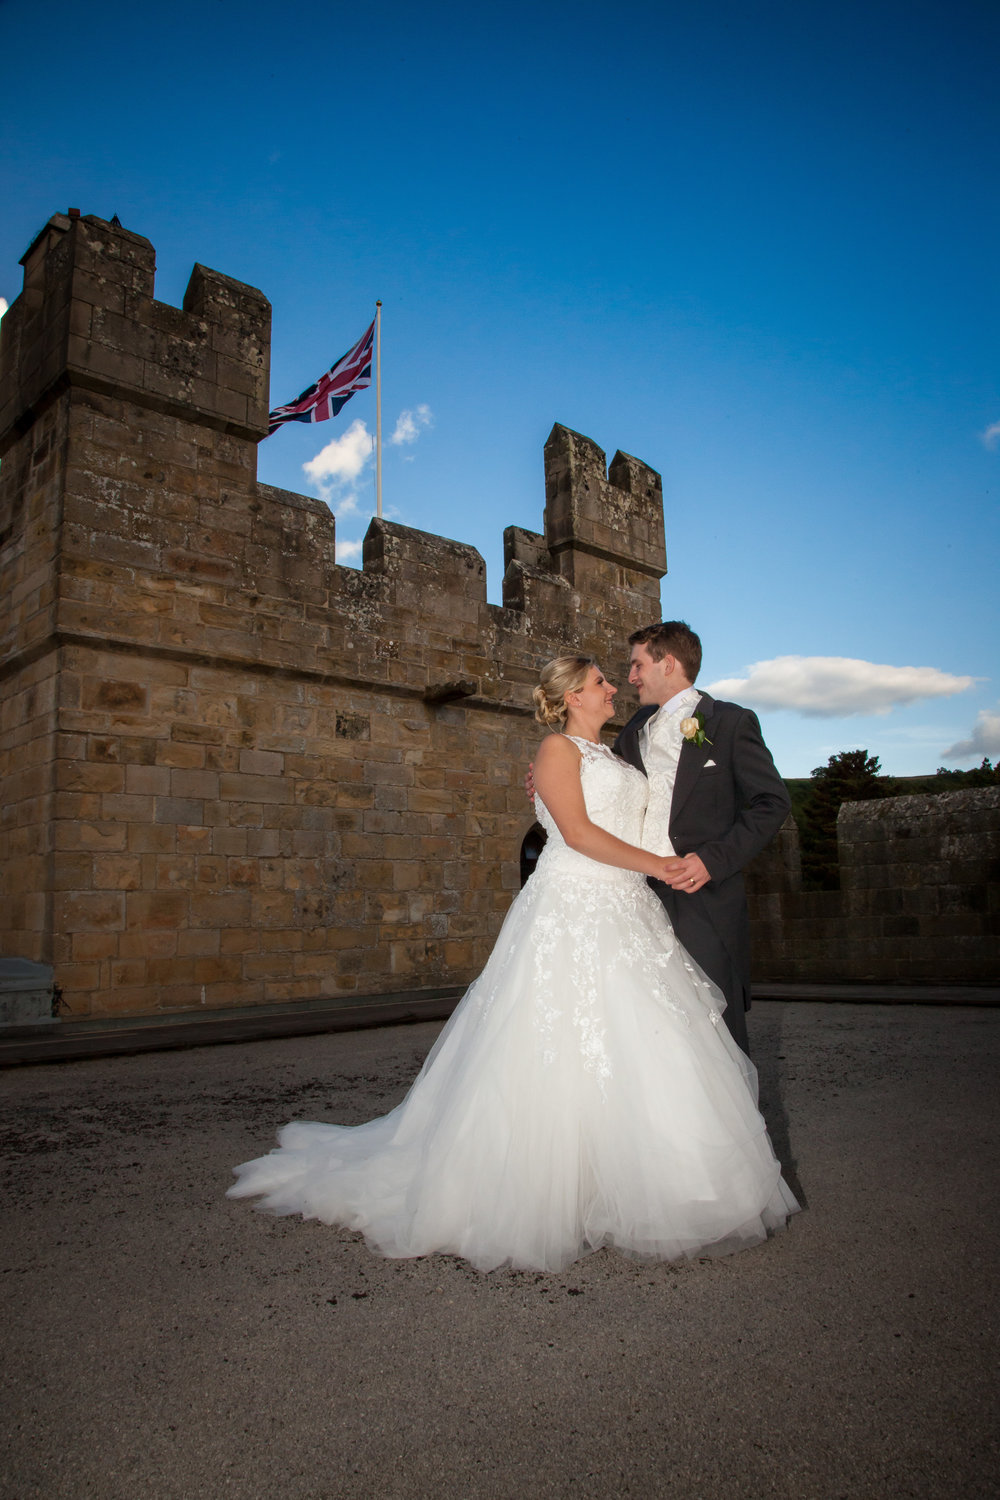 Langley Castle rooftop wedding image